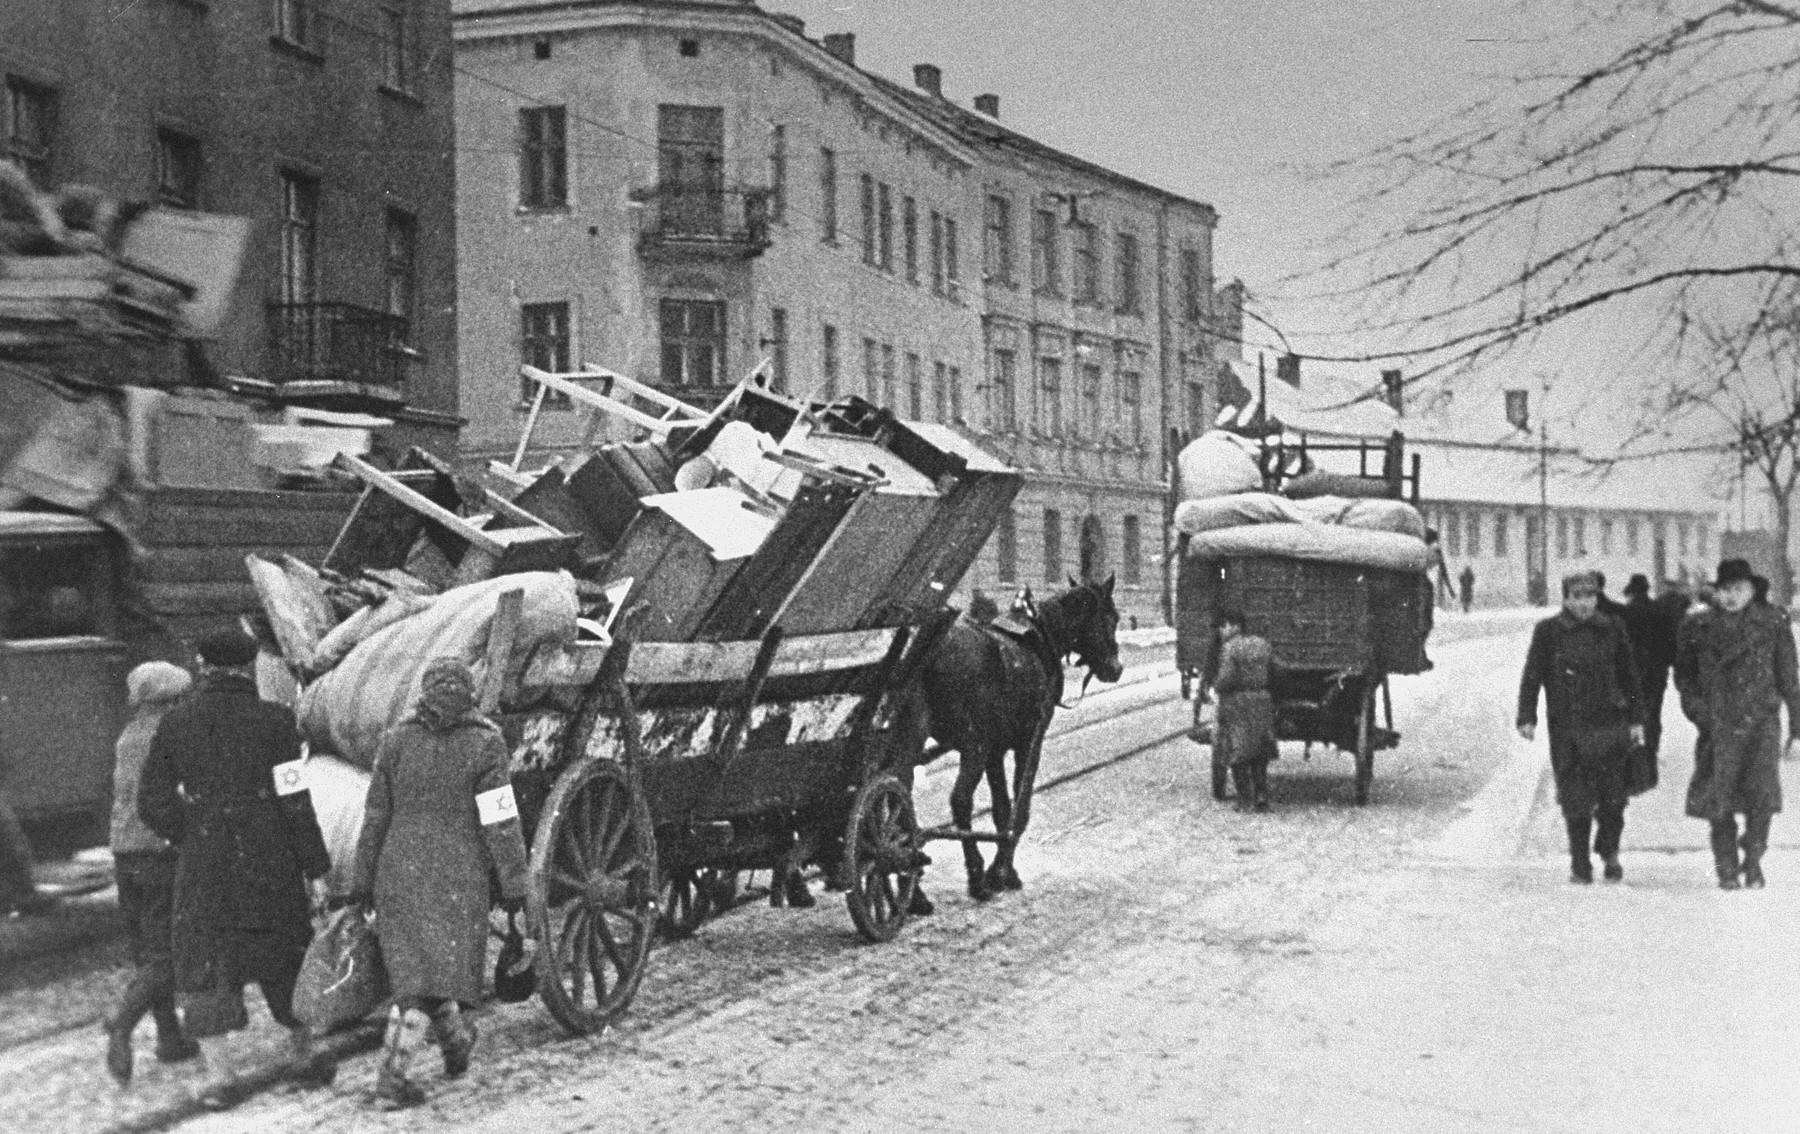 Jews move their belongings into the Krakow ghetto in horse-drawn wagons.